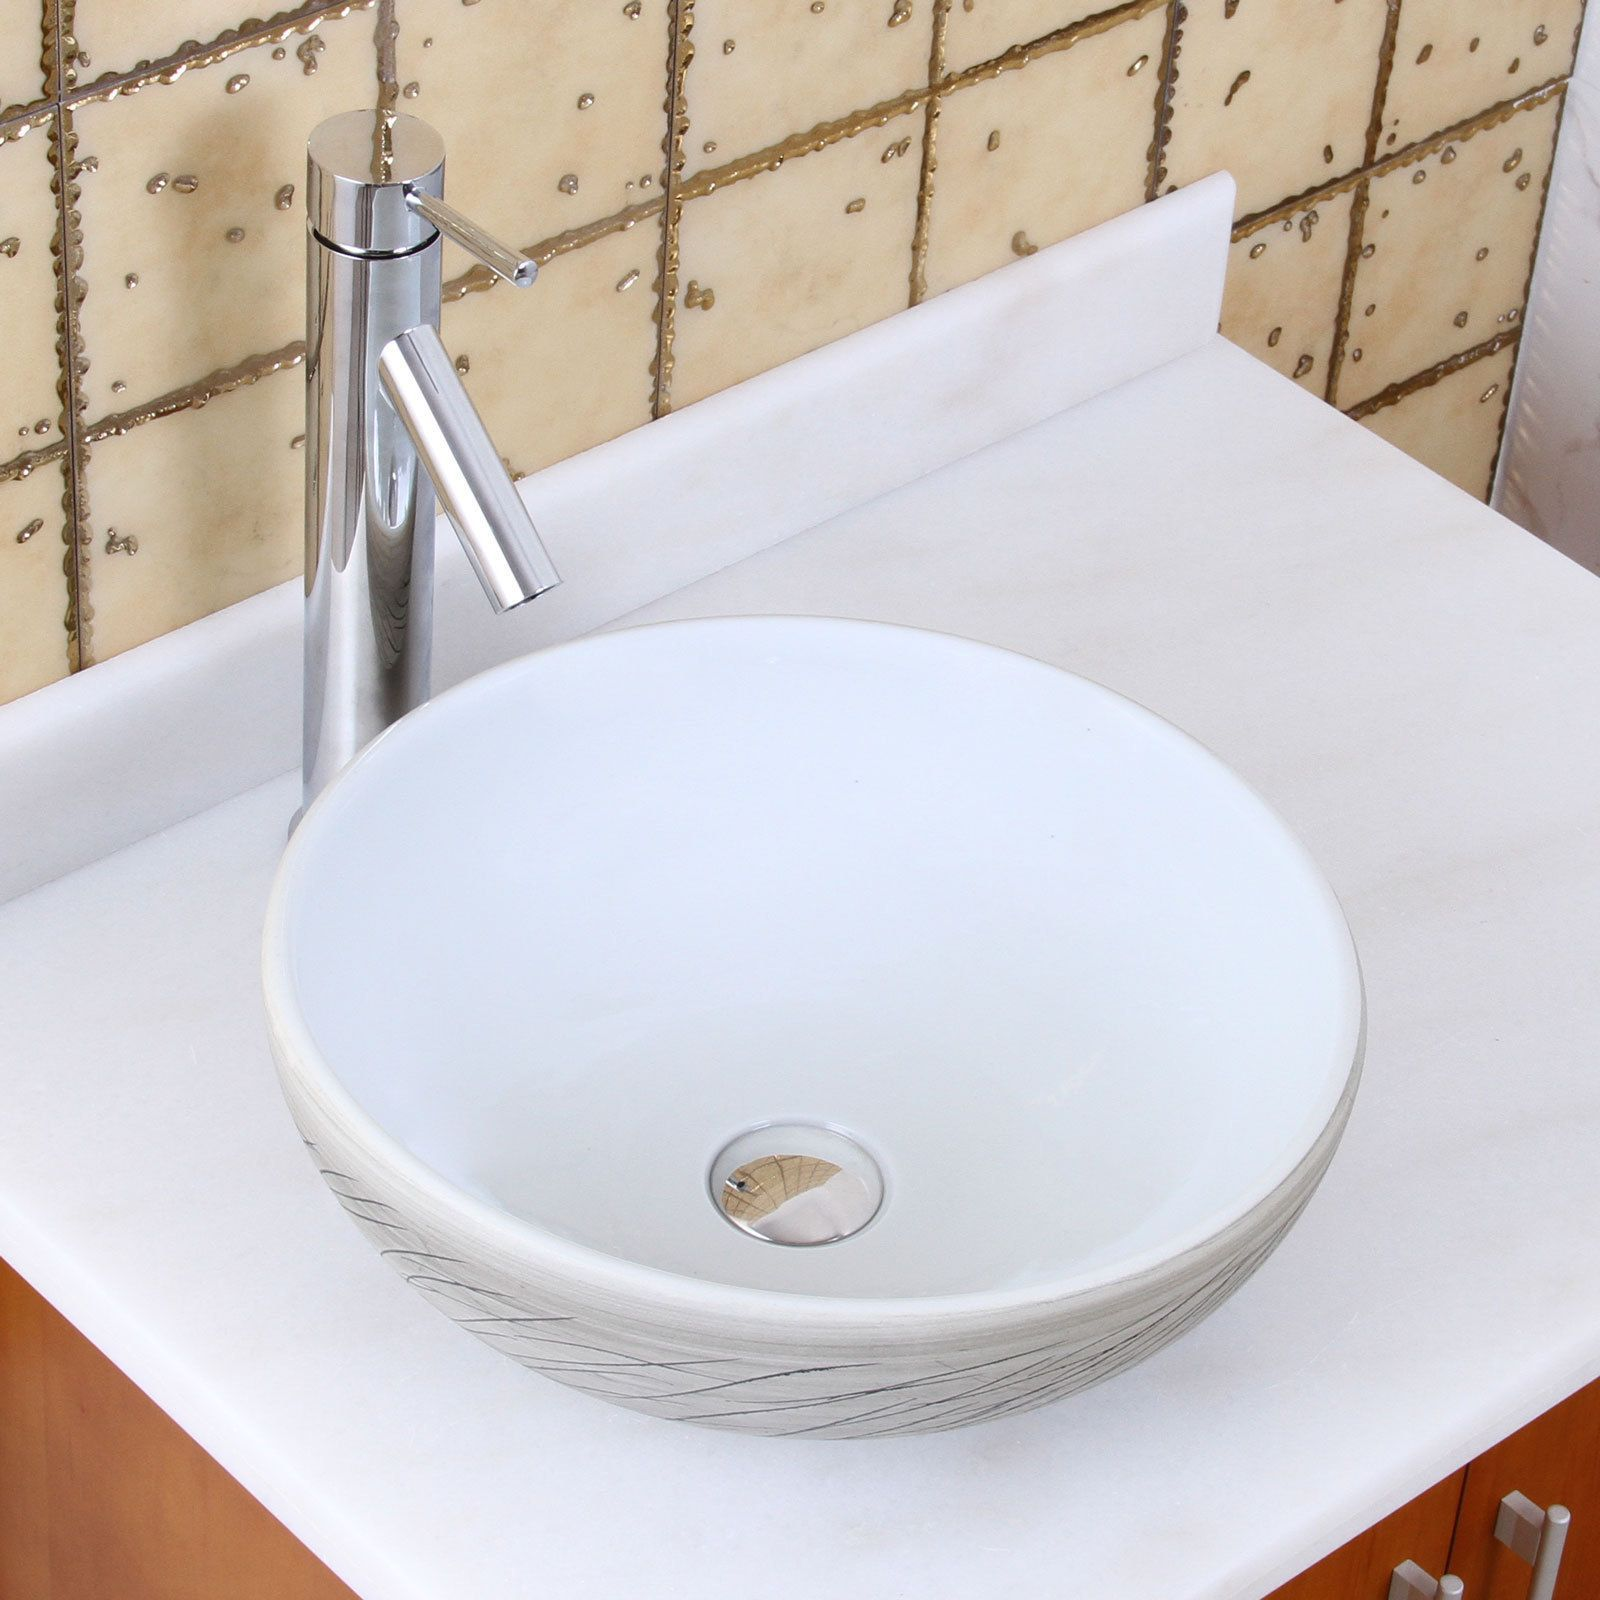 Elite 1575 2659 Round White And Gray Willow Porcelain Ceramic Bathroom Vessel Sink With Faucet Combo Sink Ceramic Sink White Porcelain